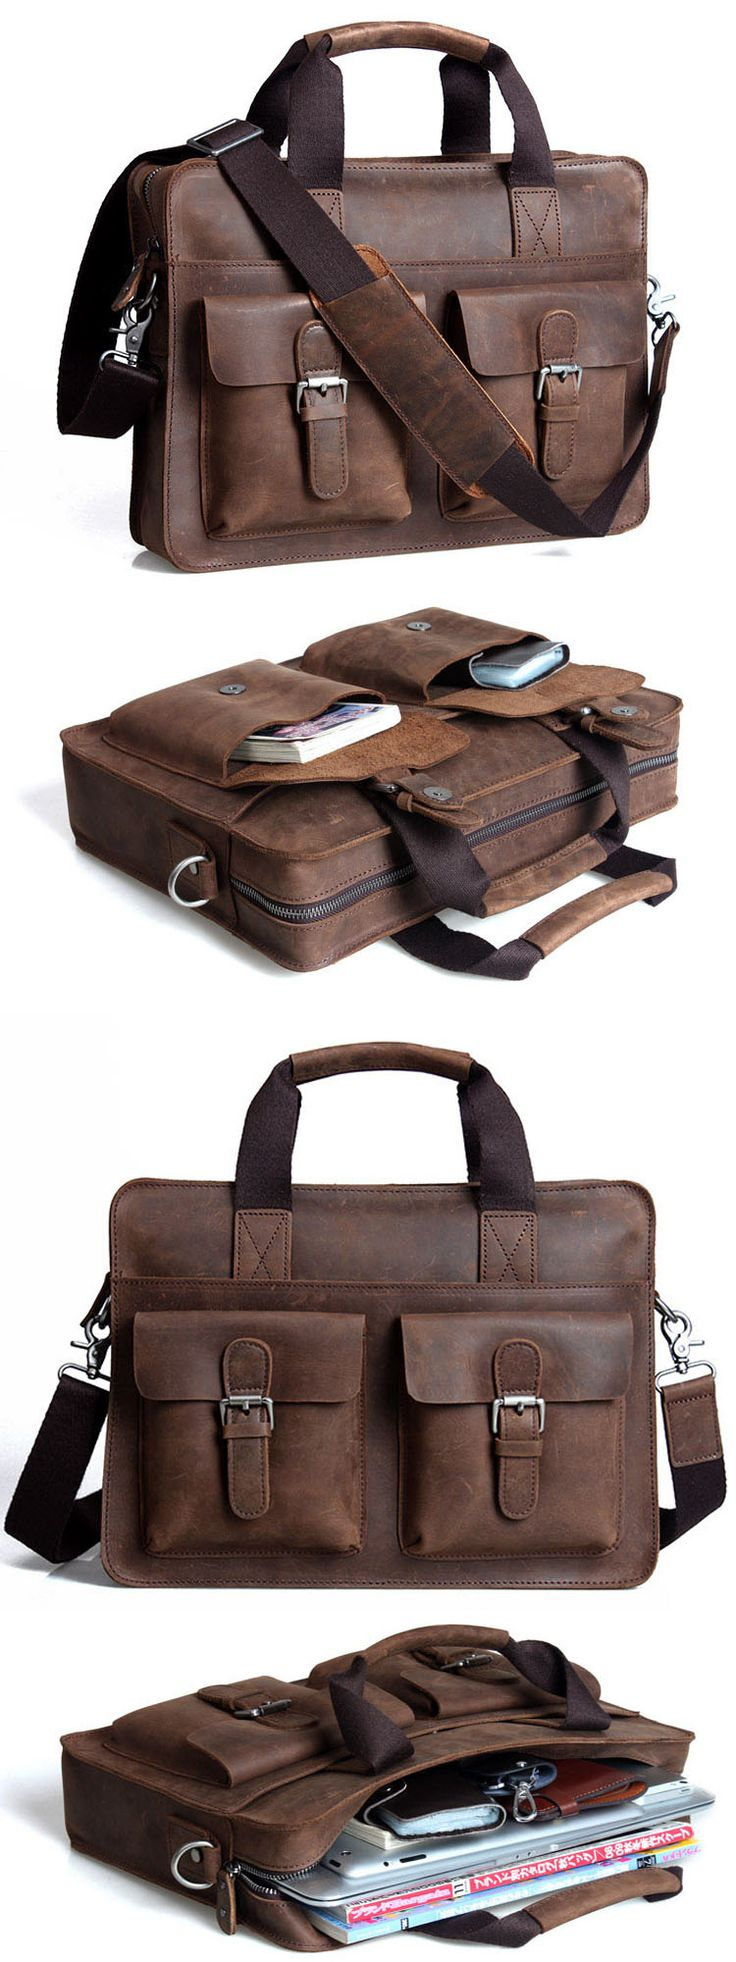 "Handmade Crazy Horse Leather Briefcase Messenger Shoulder Bag 13""14"" Laptop Macbook Ipad Bag"